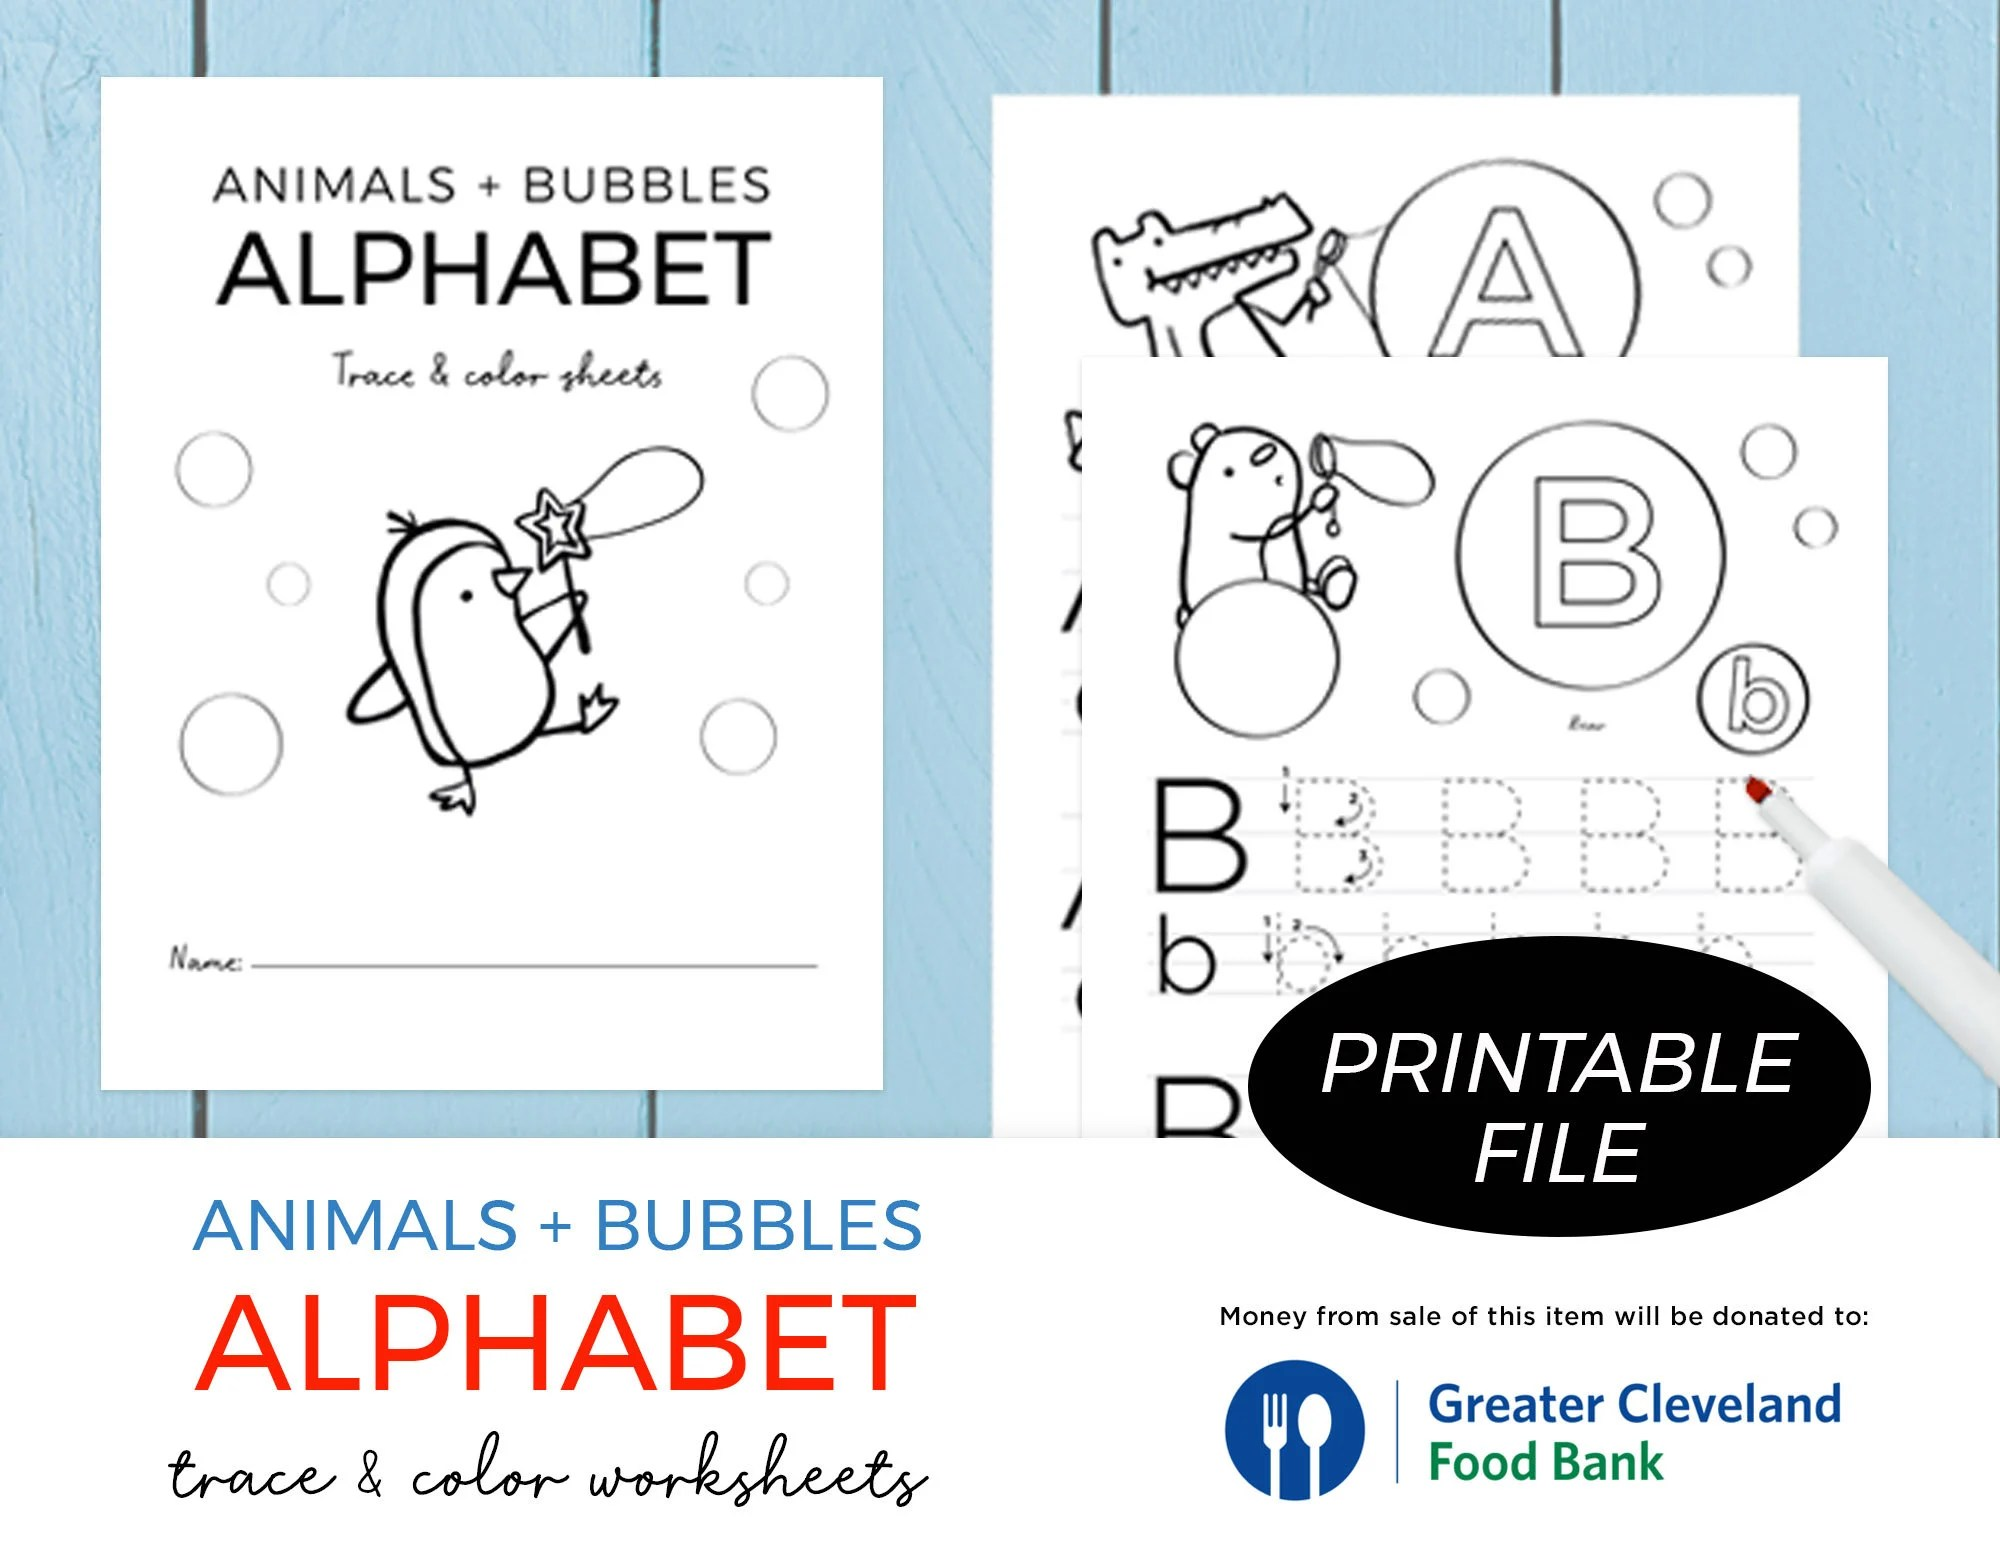 Traceable Alphabet Worksheets Alphabet Tracing Letters